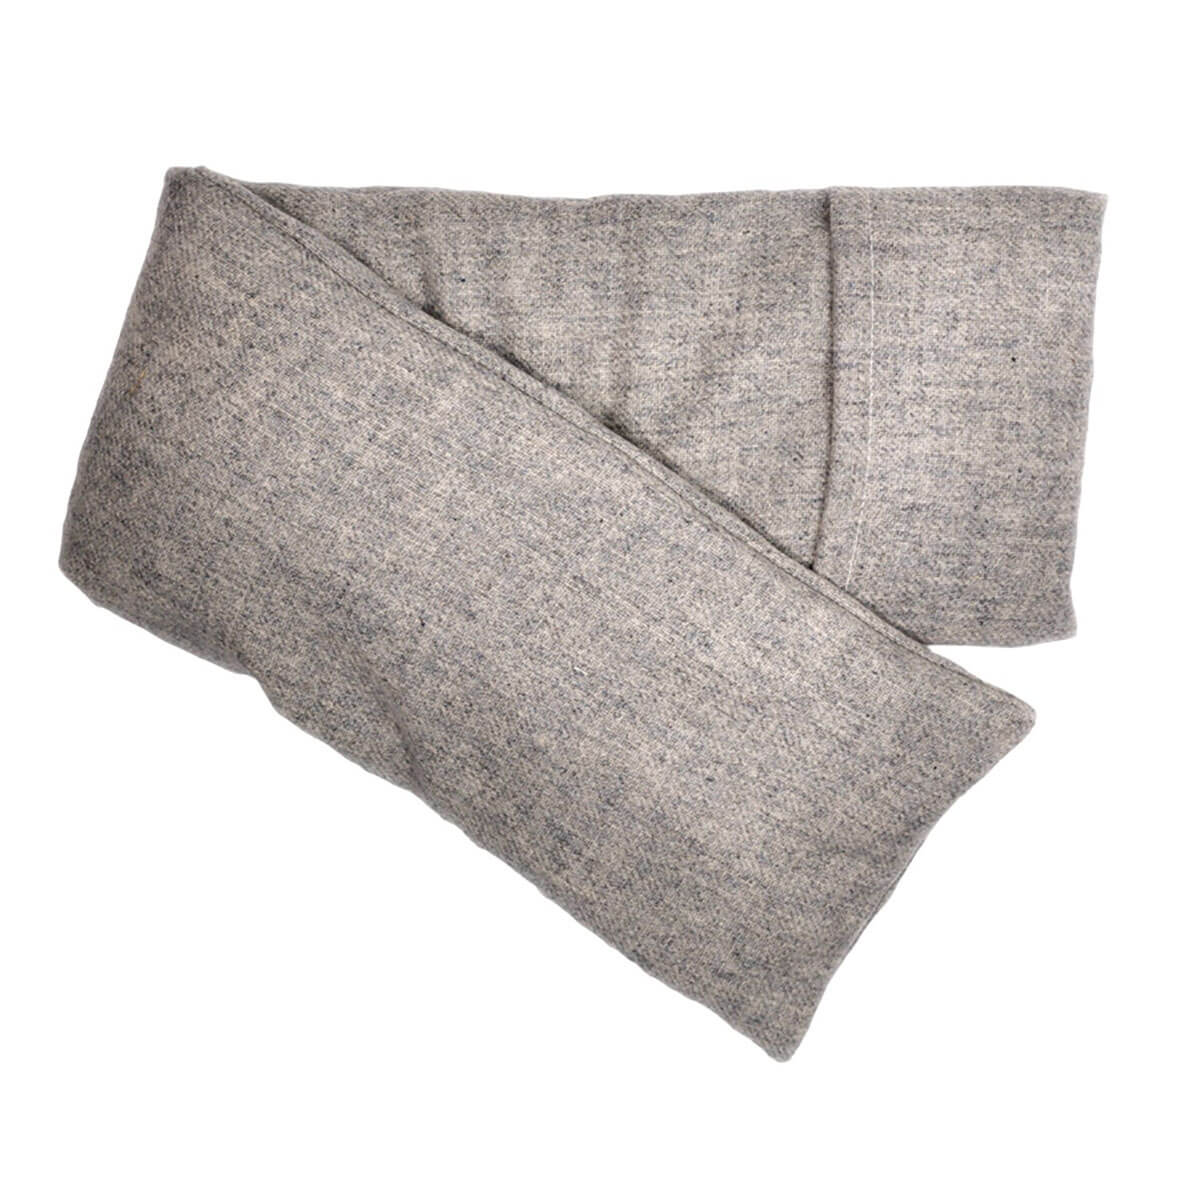 elizabeth W Wool - Heather Gray Hot/Cold Flaxseed Pack